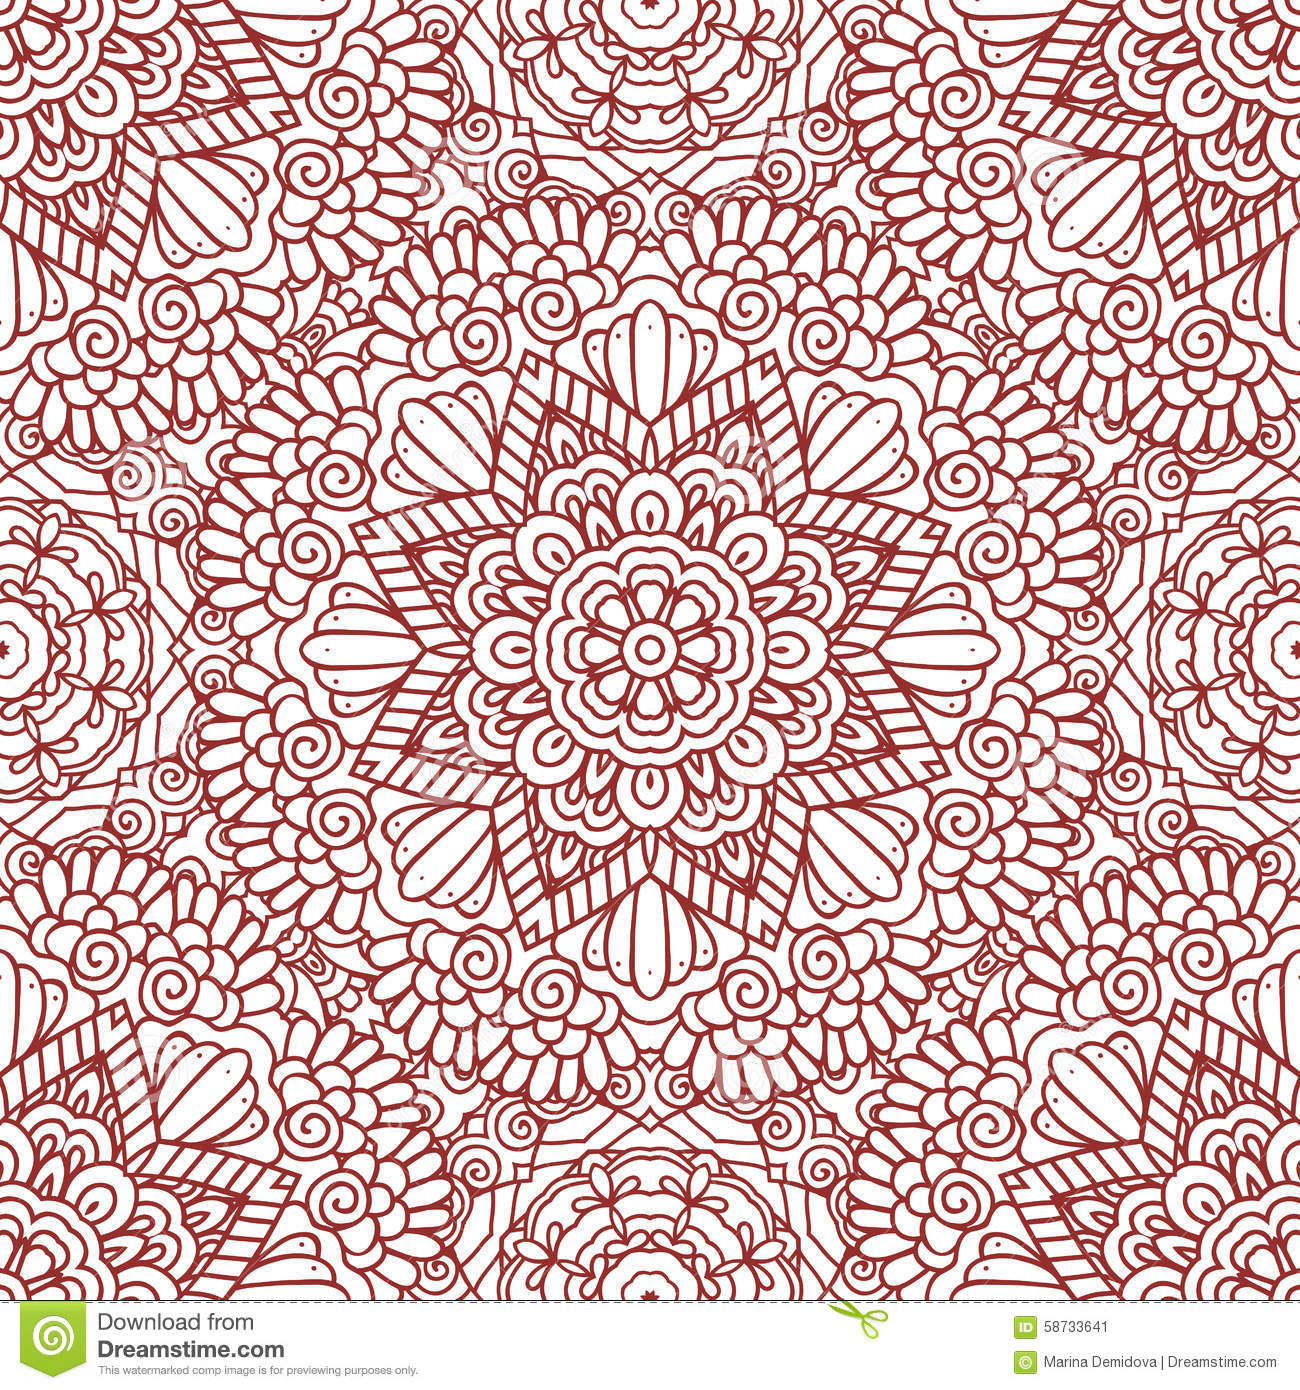 Mehndi Patterns Easy On Paper : Mehndi henna design seamless pattern stock vector image